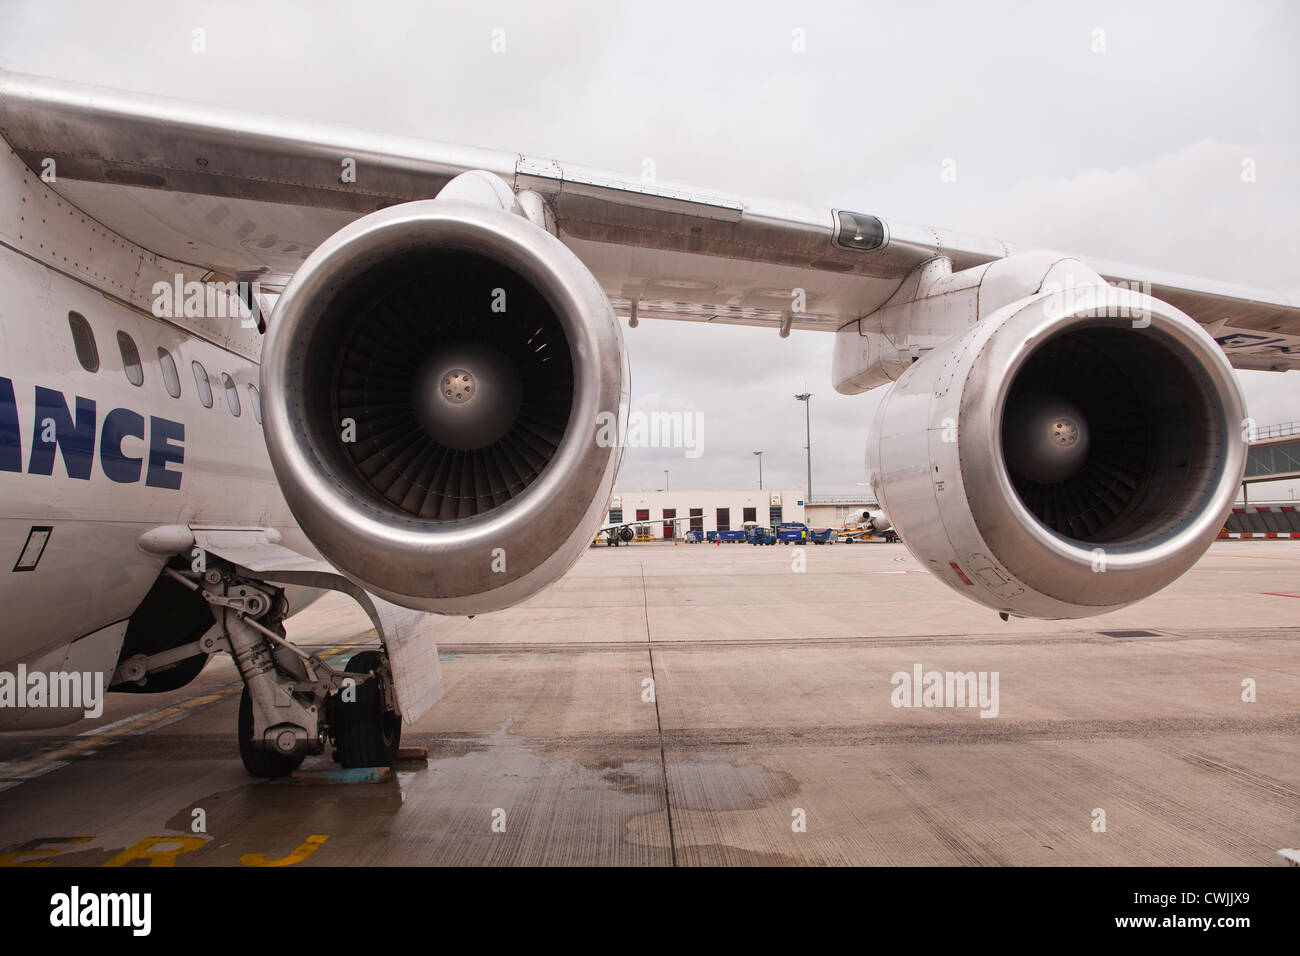 A CityJet operated by Air France waits departure. - Stock Image